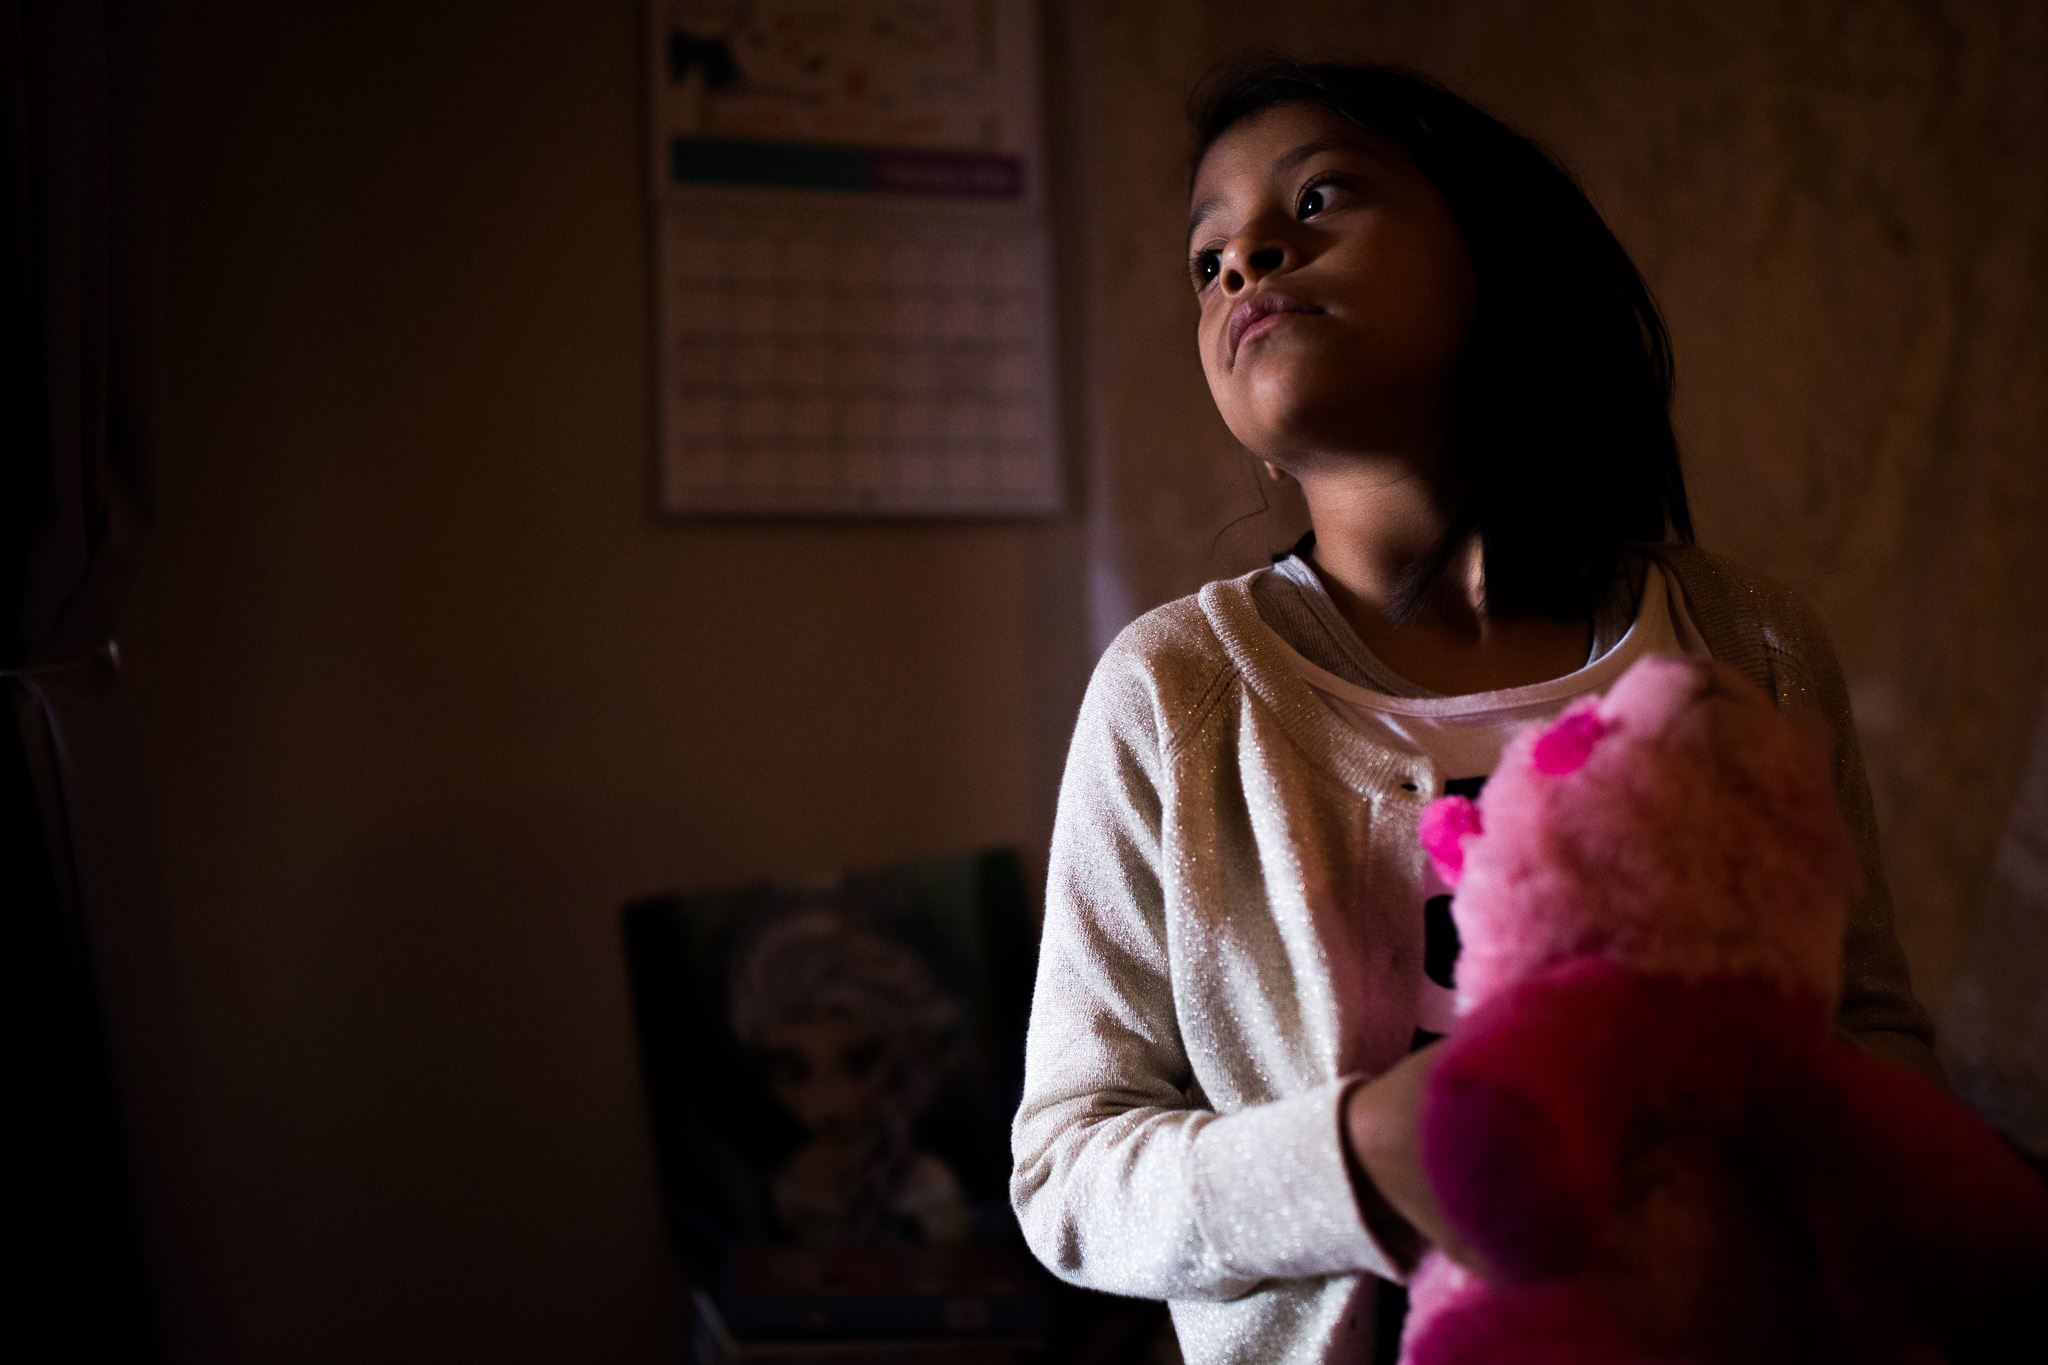 Angelica peers outside of her shared room door to the living room where her cousin calls her name. Photo by Scott Ball.